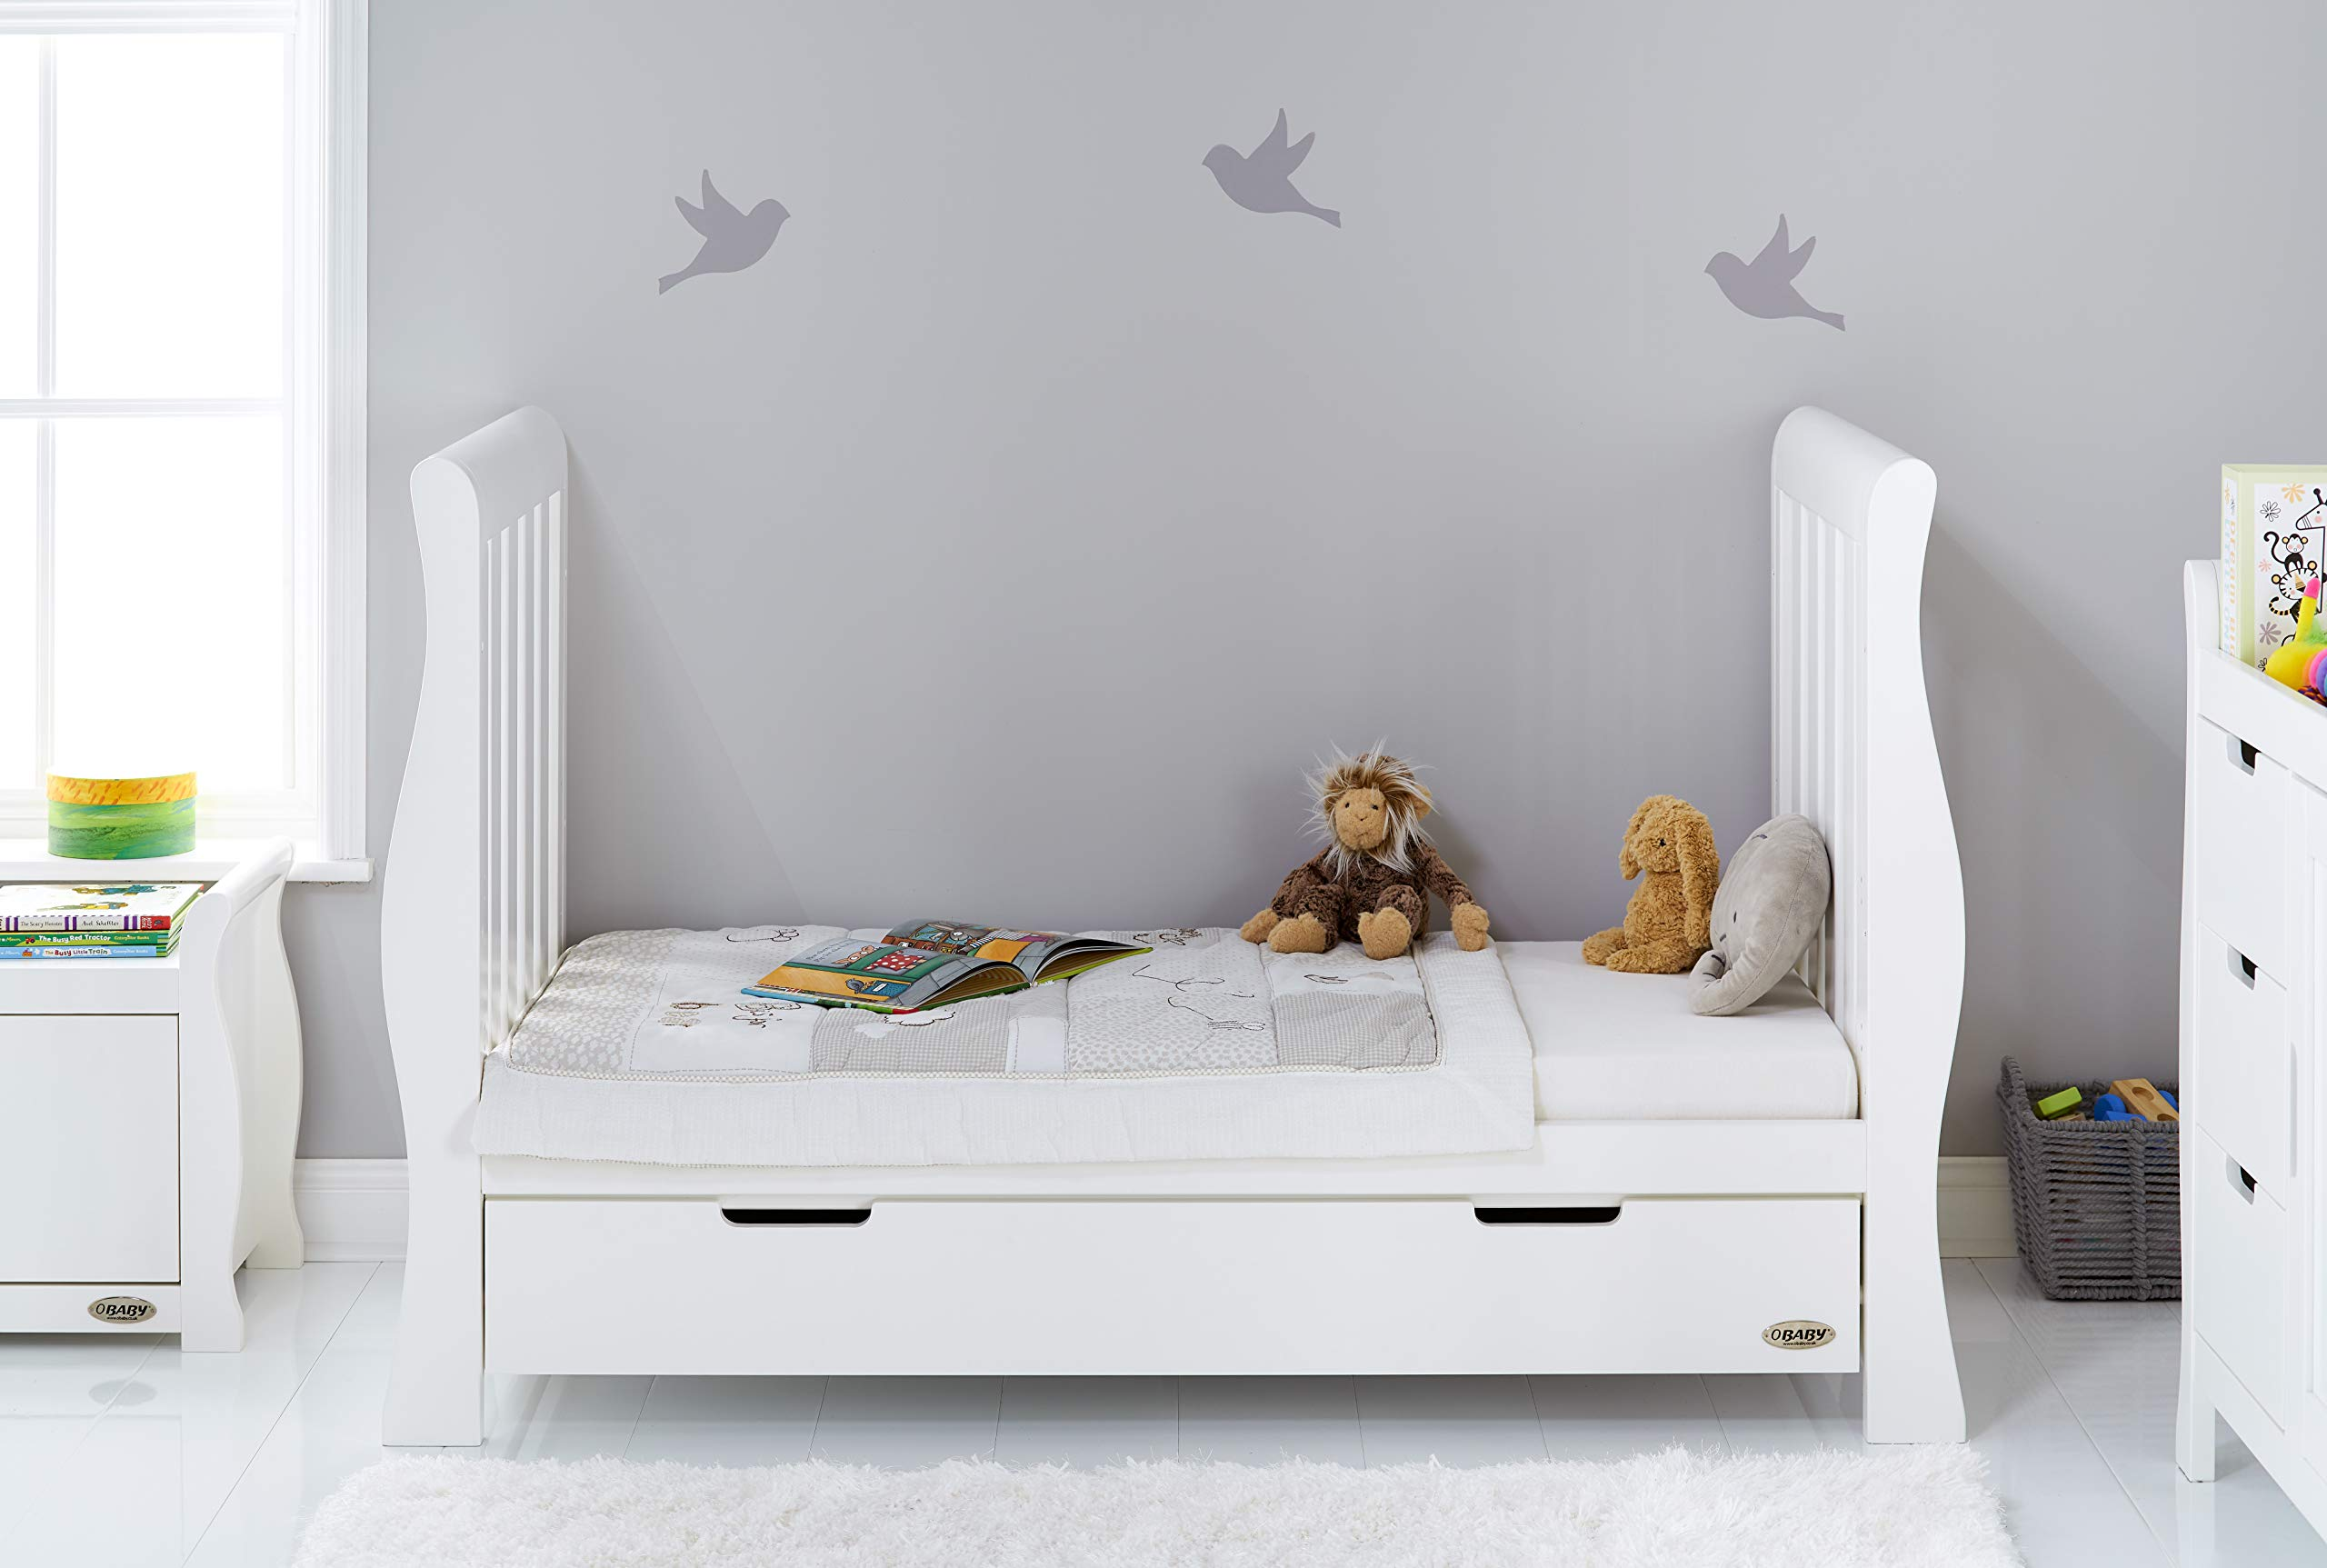 Obaby Stamford Sleigh Luxe Cot Bed - White Obaby Adjustable 3 position mattress height Bed ends split to transforms into toddler bed Includes matching under drawer for storage 3